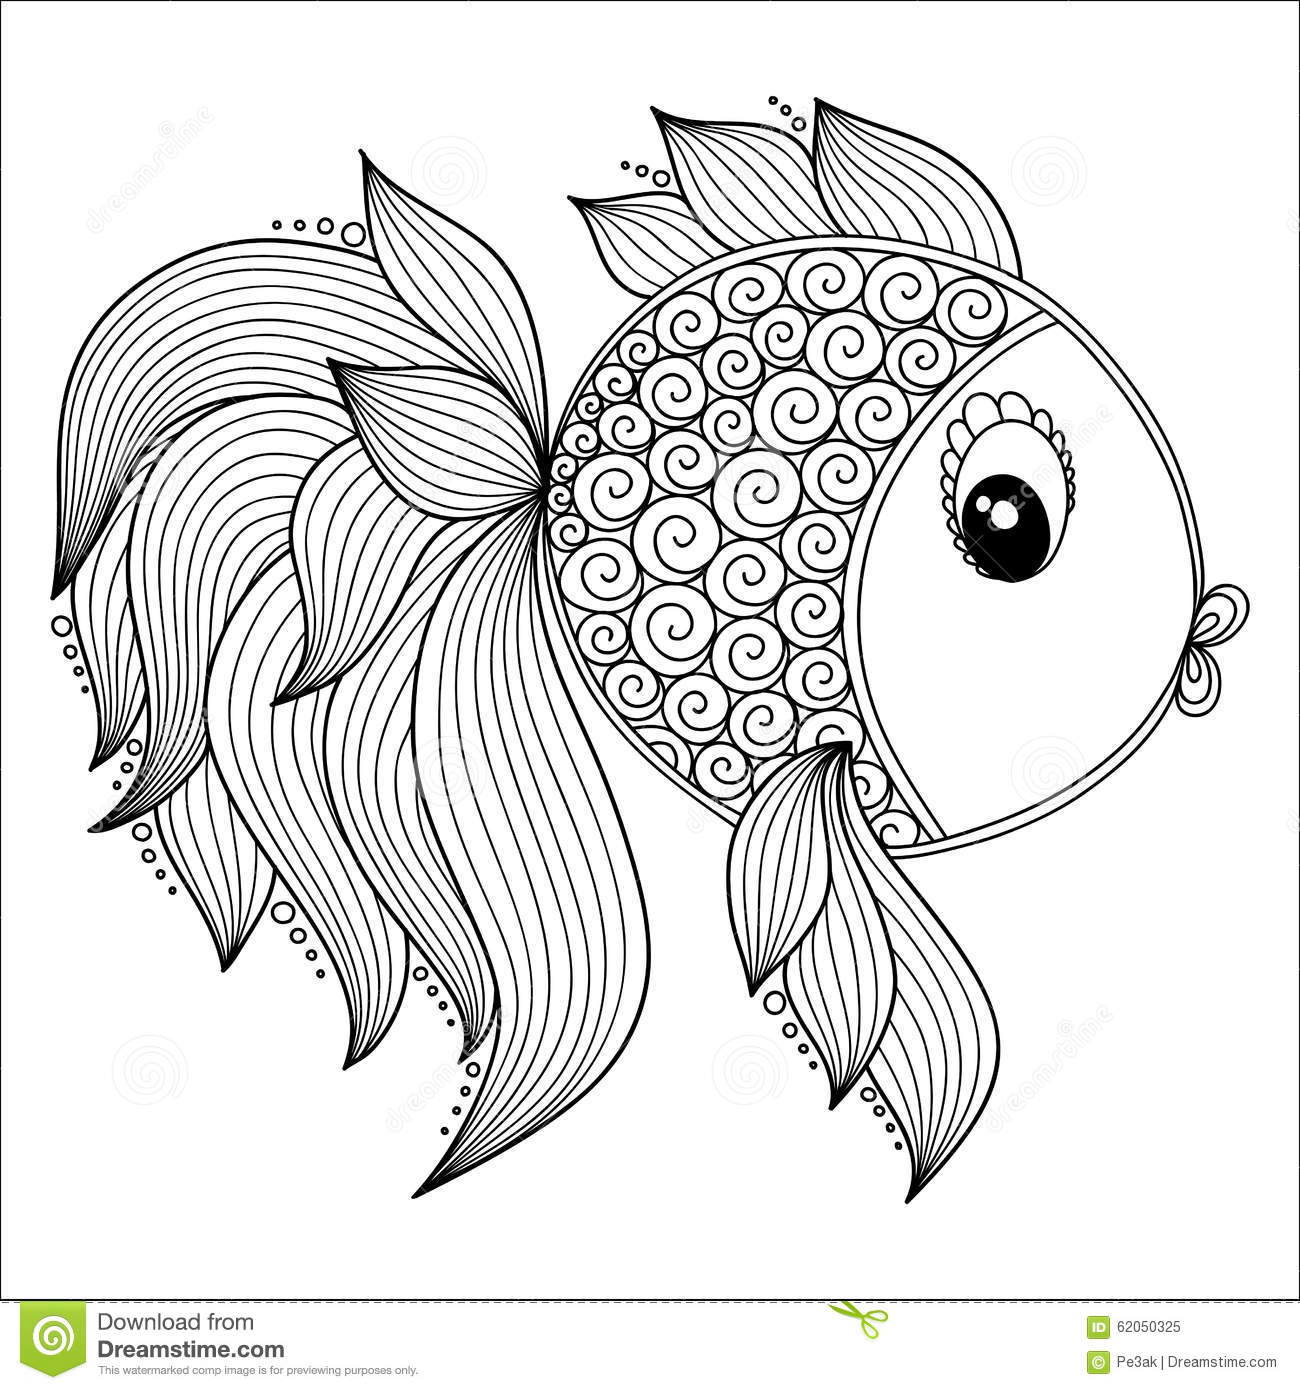 3d coloring pages for adults photo - 1